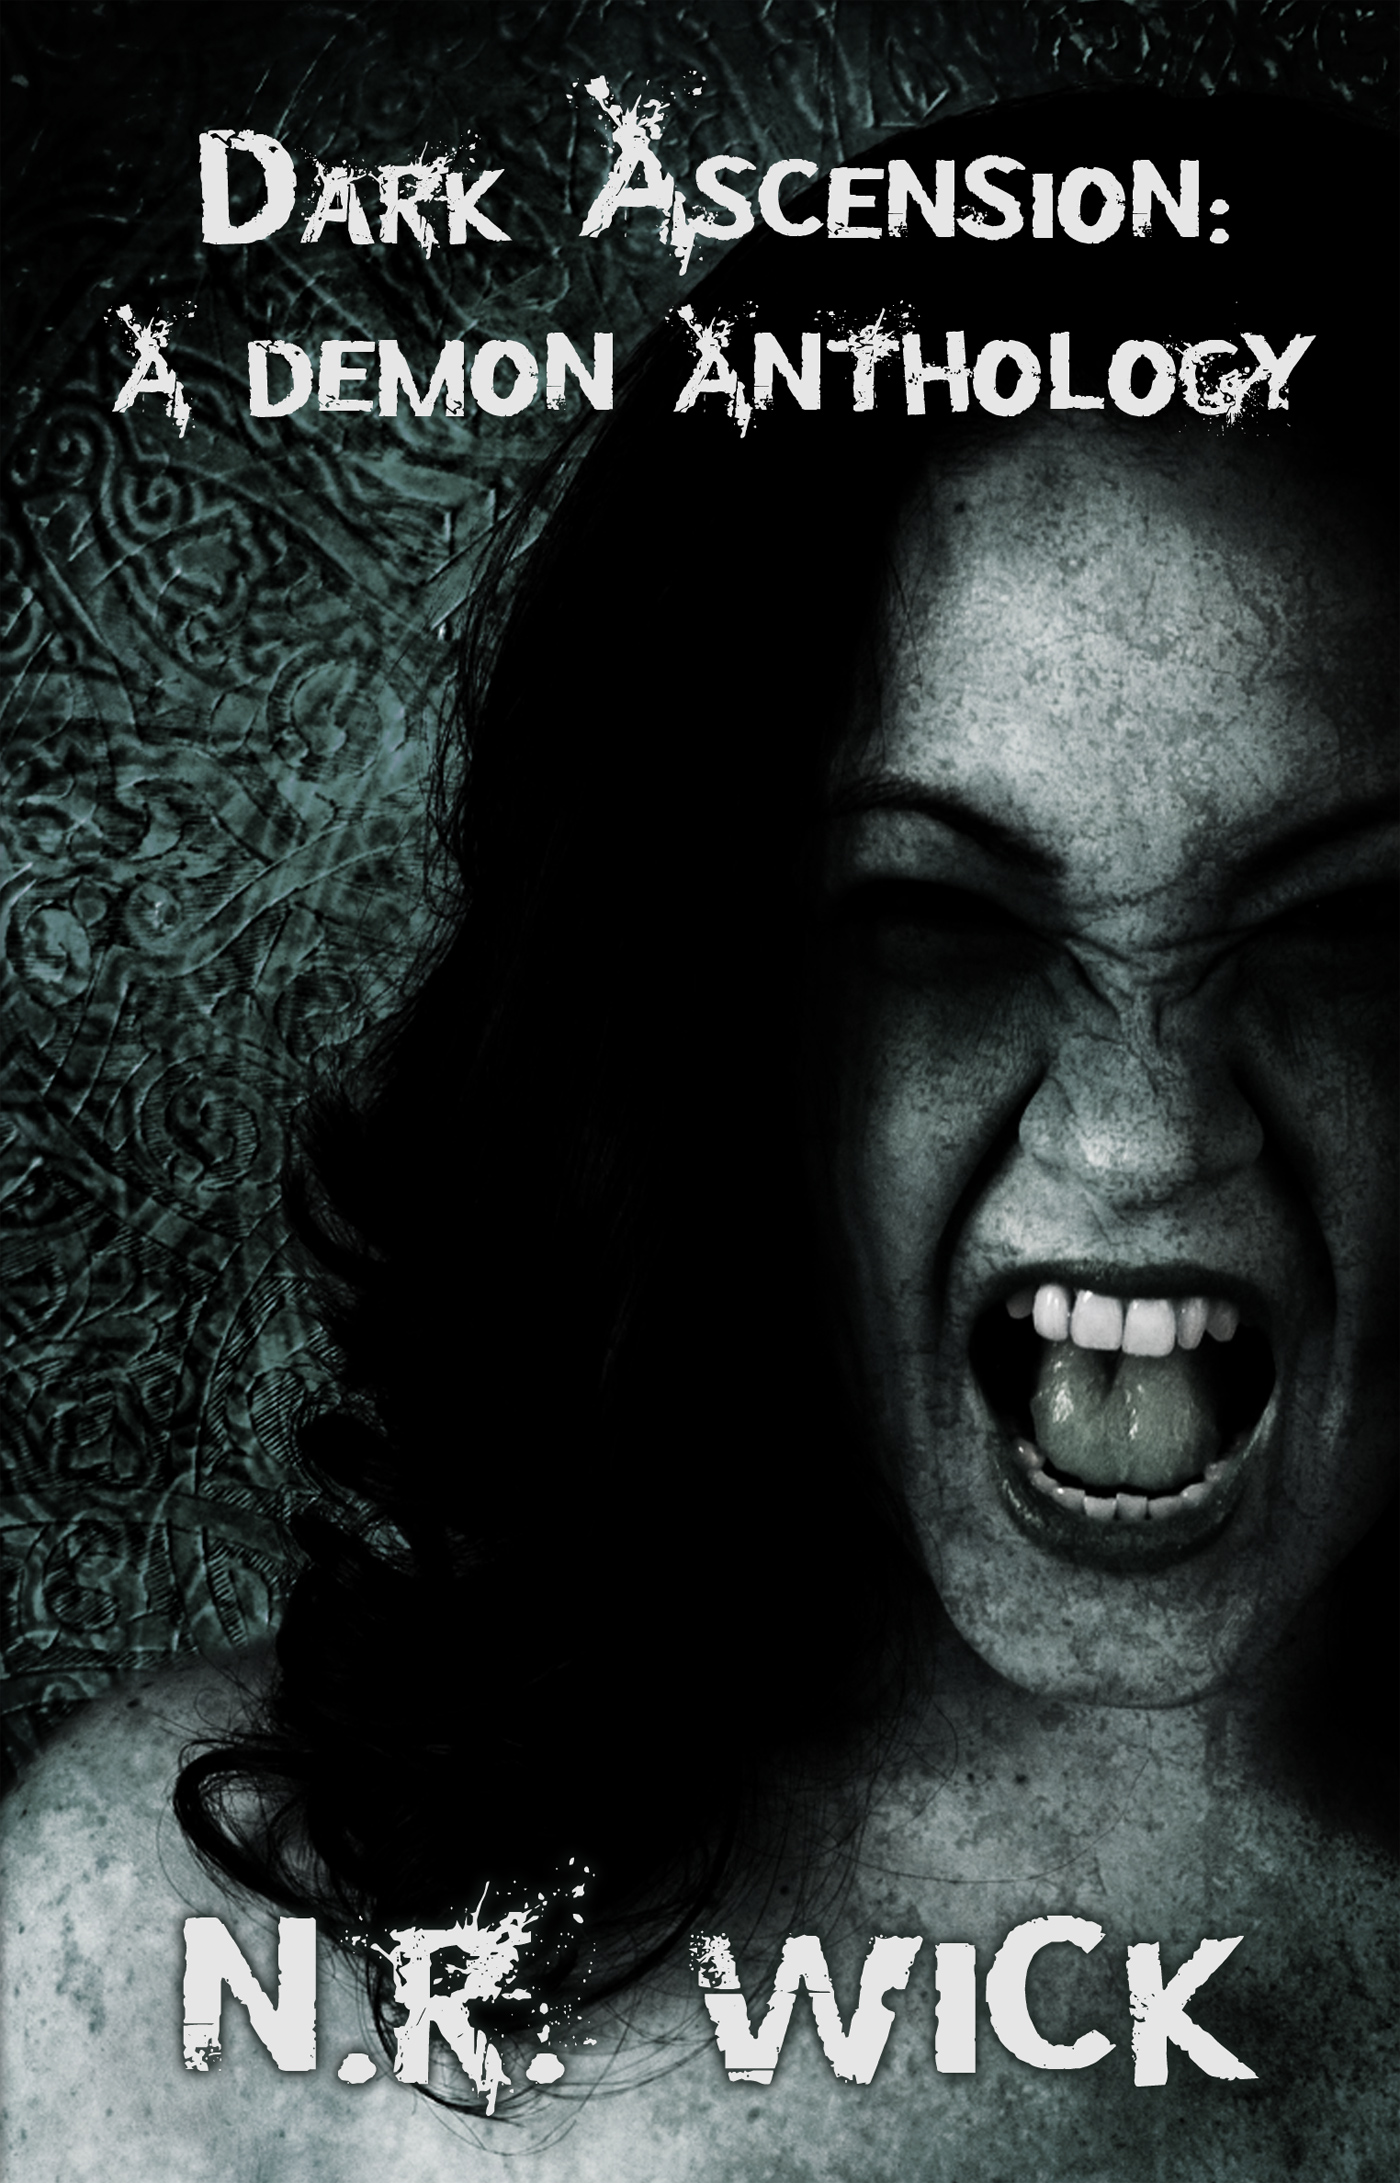 Dark Ascension: A Demon Anthology